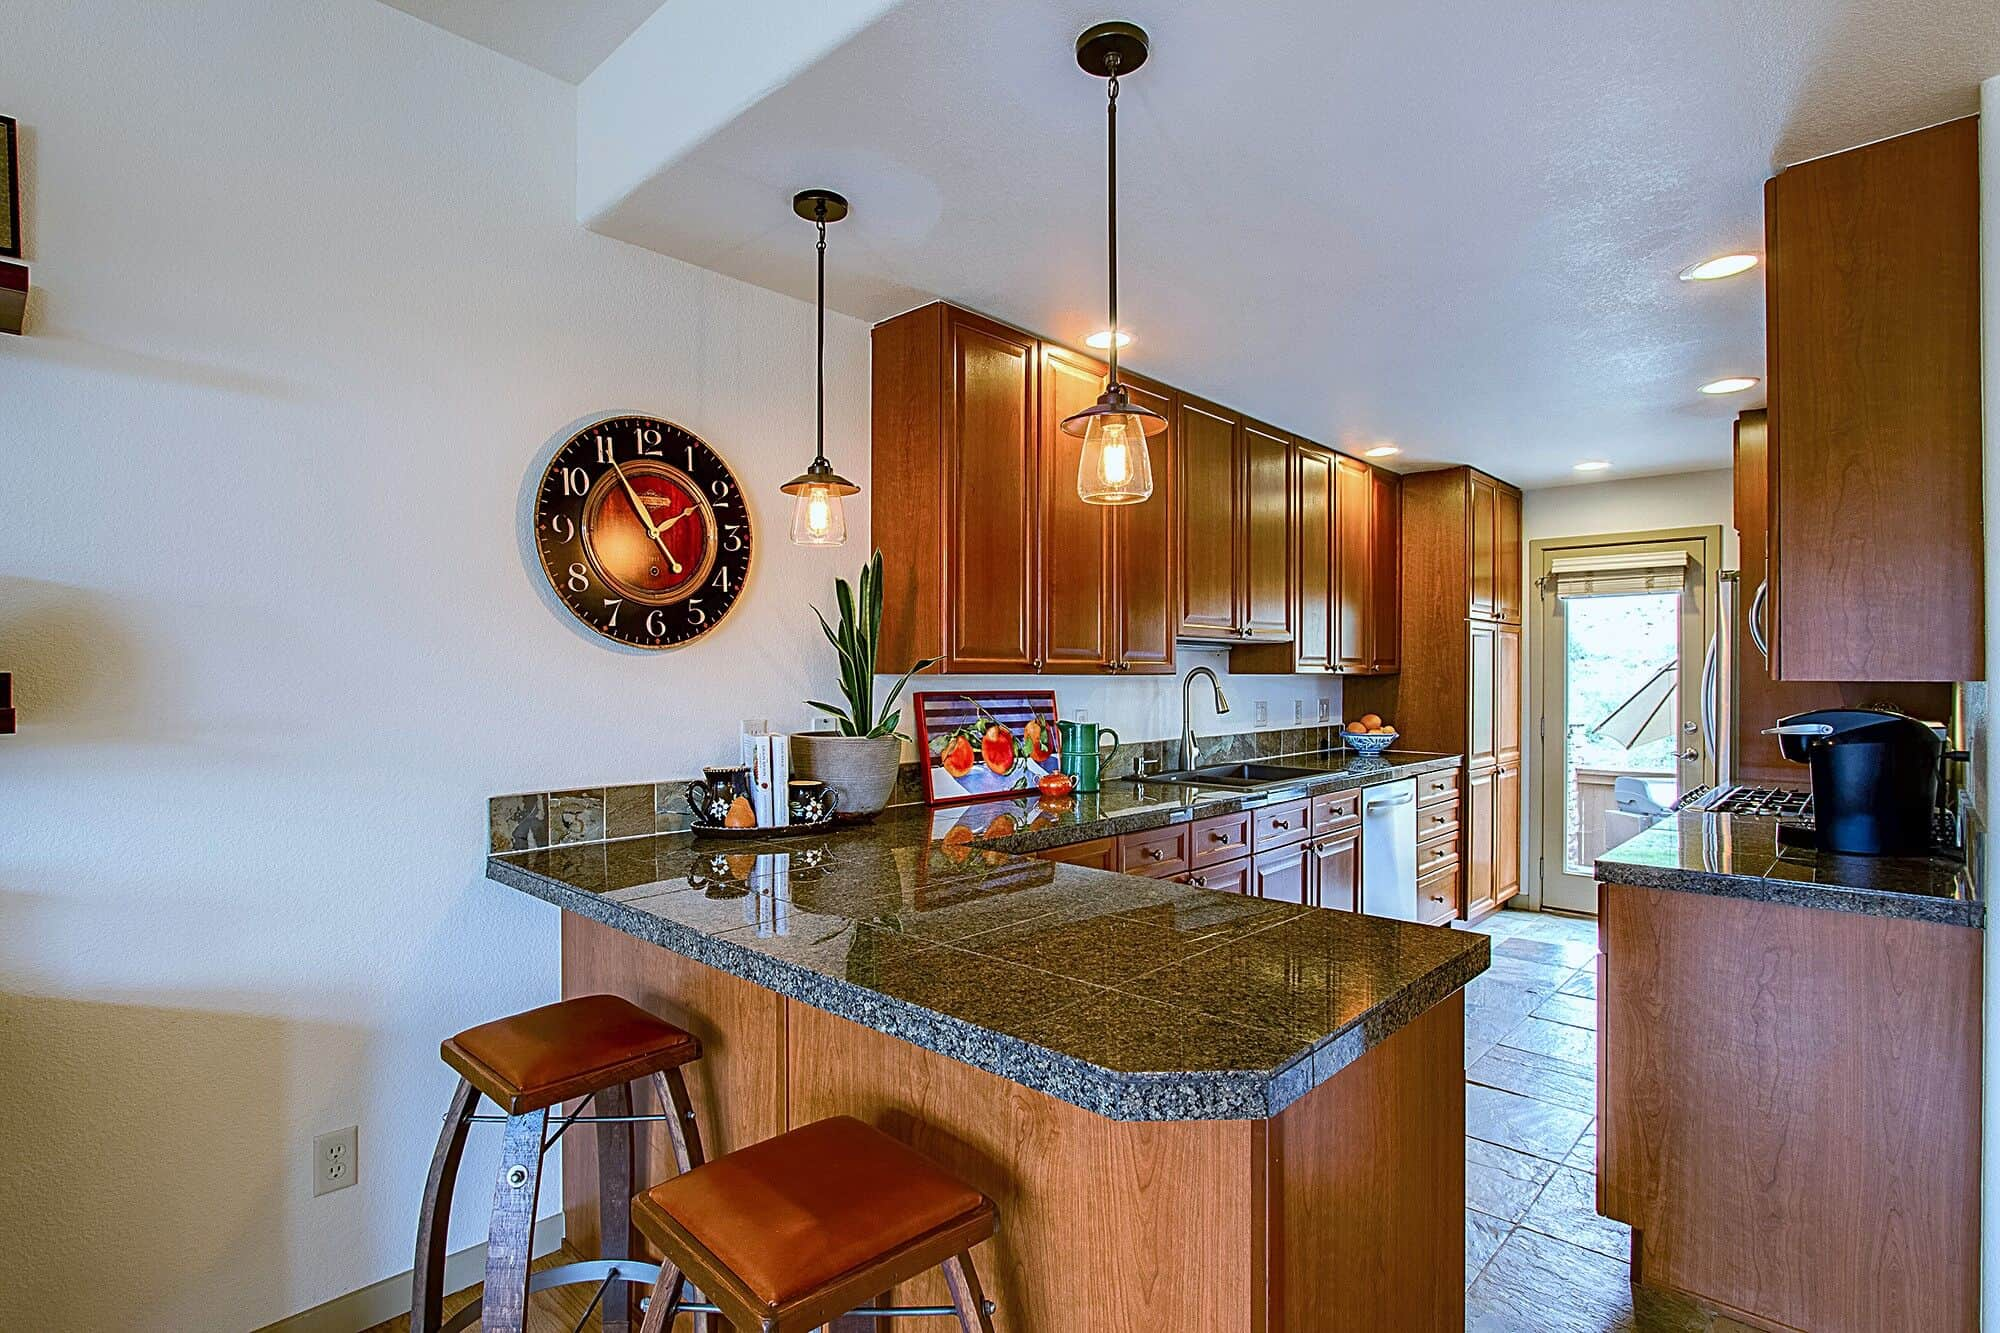 Kitchen Counter Bar and Granite Countertops with Pendant Lights